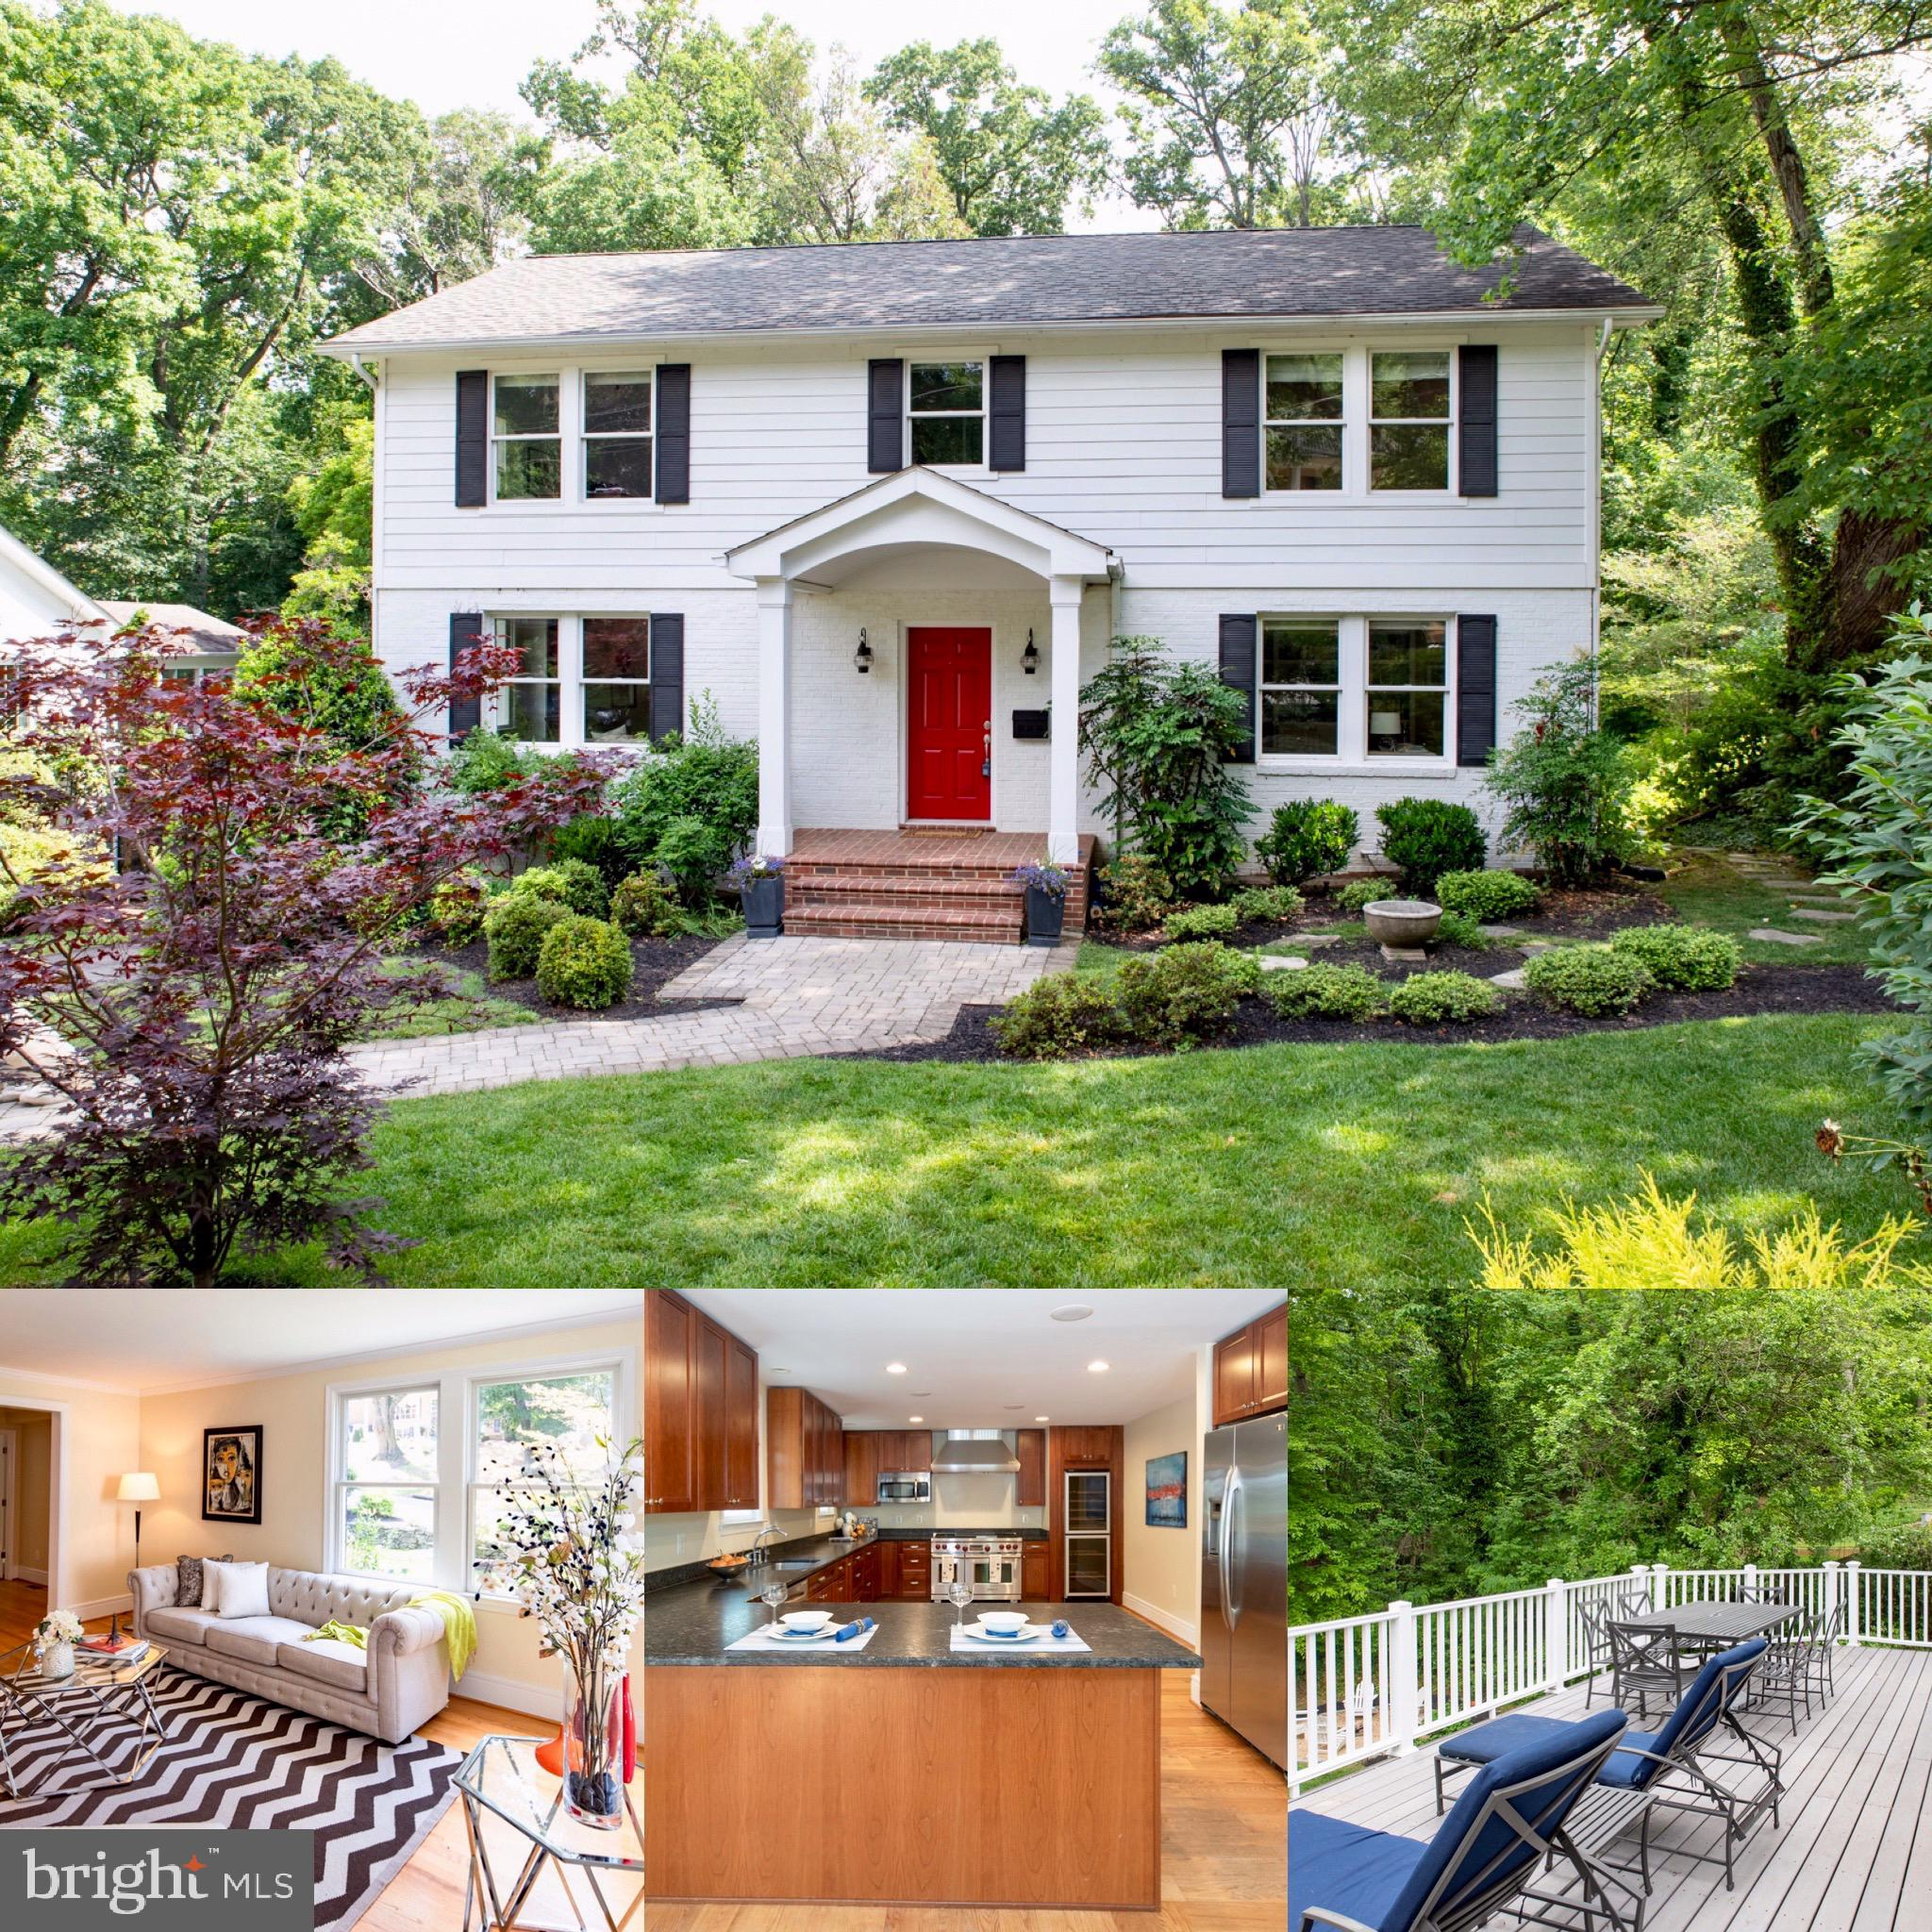 """Wonderful opportunity for this spacious colonial that backs to parkland in desirable Belle Haven.  Renovated and expanded in 2008, this home is move-in ready.  Rear loading two car garage.  Over 4,000 sf on three levels  Living room with built-ins. Main level study with built-ins. Large kitchen with island, Wolf 48"""" dual fuel range, double wine refrigerator and pantry storage. Separate dining room. Family Room with corner gas fireplace and large wrap-around deck overlooking private back yard oasis. 4 Bedrooms/3 baths up with generous room sizes. Master Bedroom with vaulted ceilings, double walk-in closets and deck. Walk-out lower level with large recreation room, full bath and storage. Dual zone HVAC. Built-in speakers. Wood flooring throughout main and bedroom level.  Rare & large flat backyard backing to protected parkland. Easy commuting to Old Town, Potomac River Trails, DCA, DC and Fort Belvoir."""